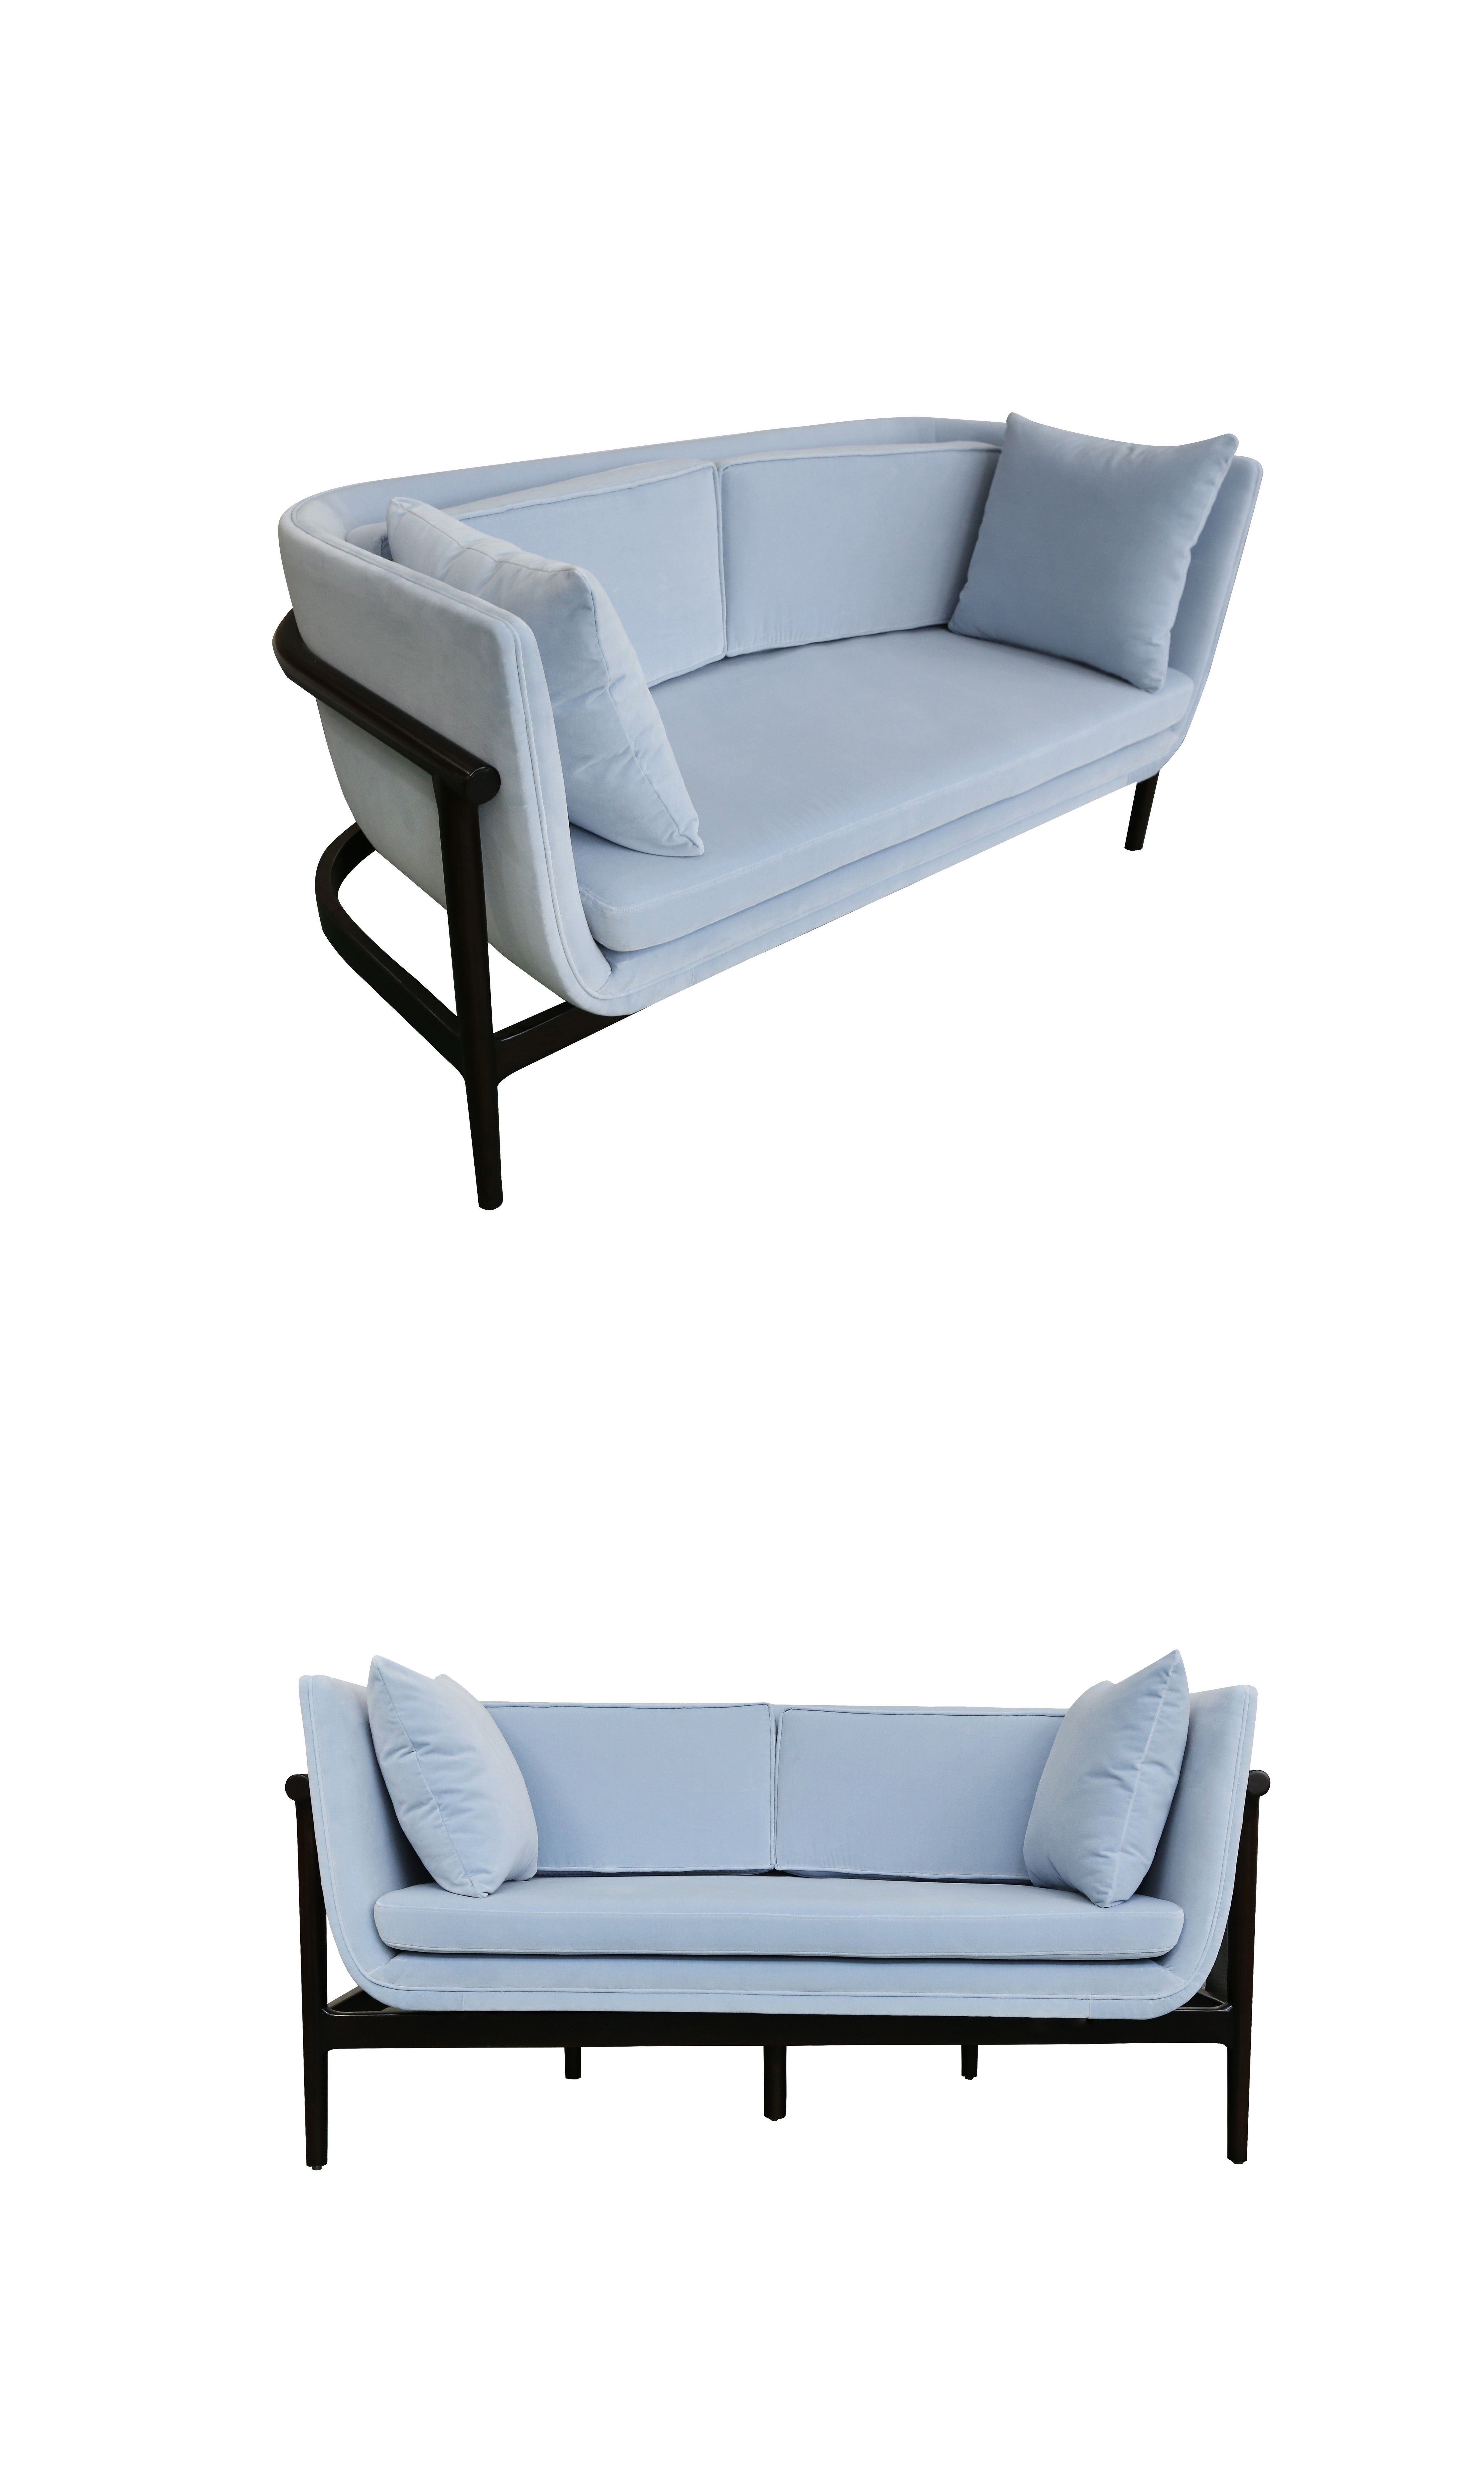 Modern Style Two Person Sofa Blue W1620 D750 H820 North American